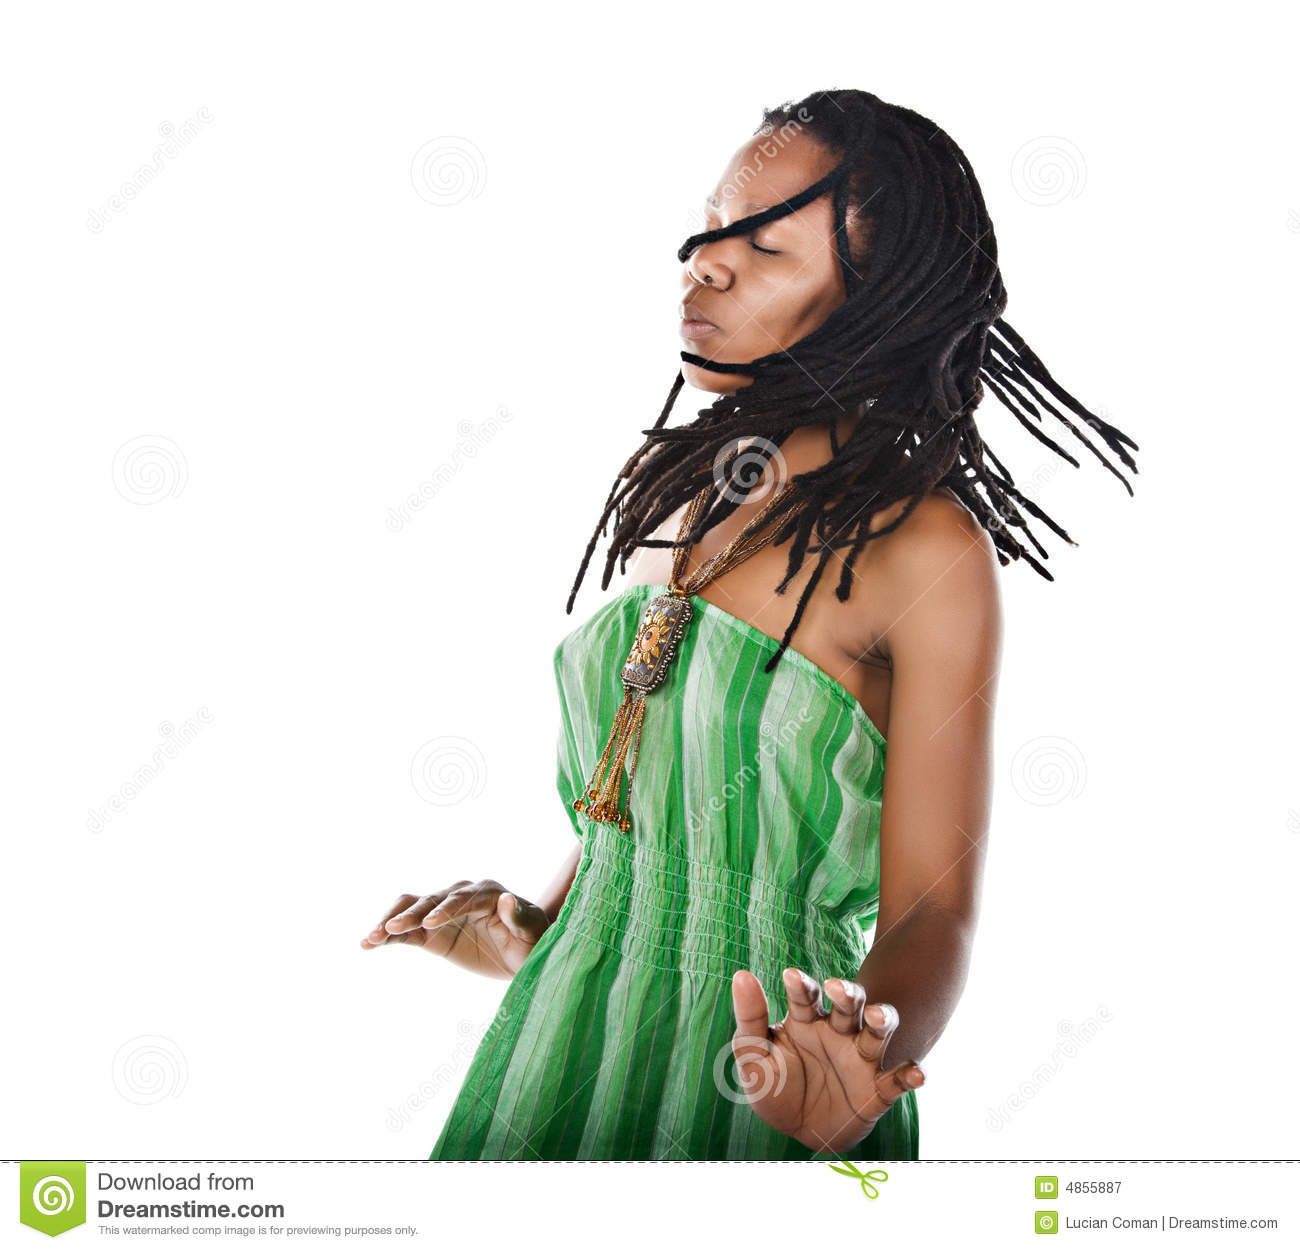 Rastafarian girls